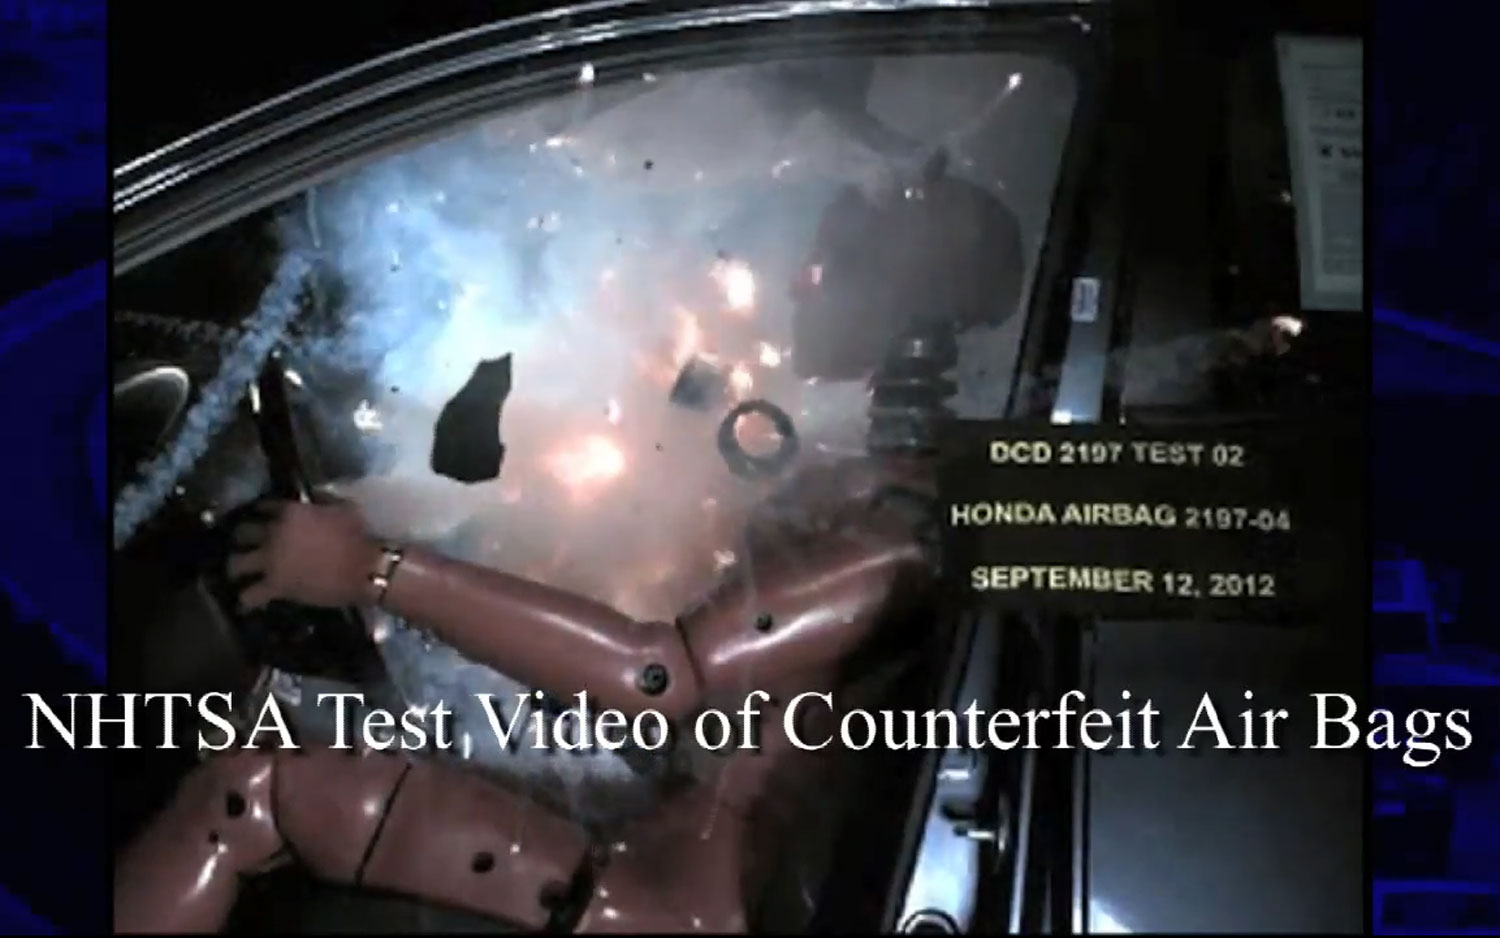 NHTSA Testing Counterfeit Airbags Shrapnel In Face1